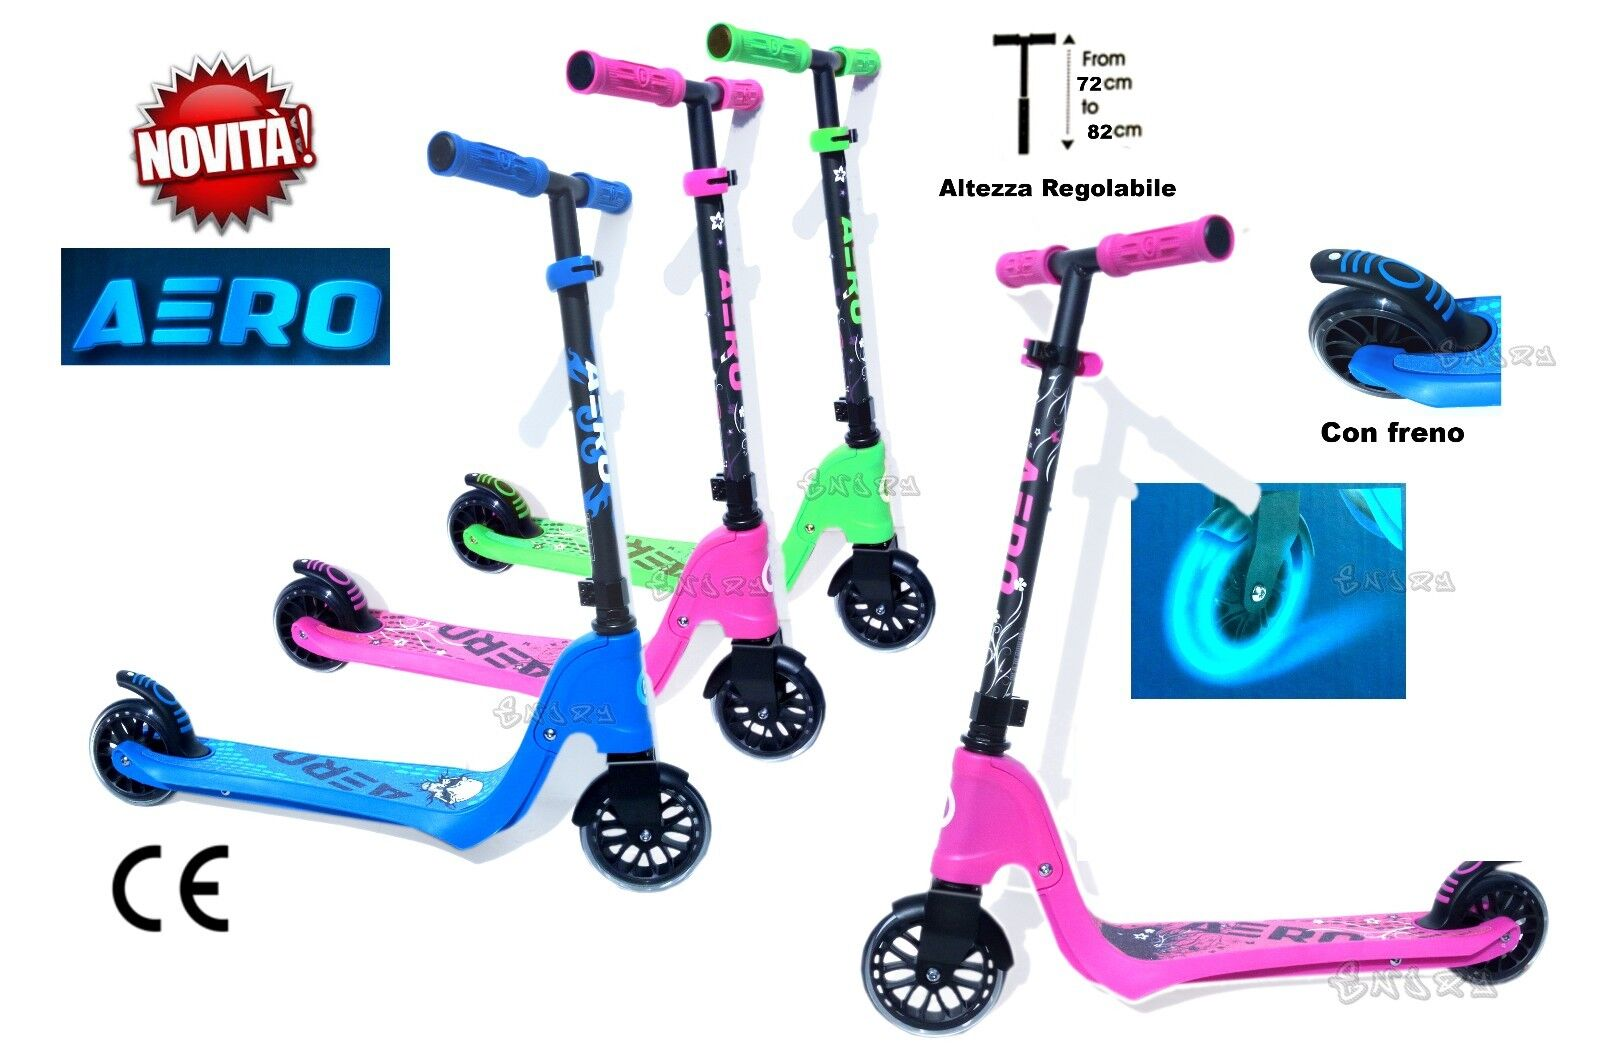 Scooter pink girl aluminum 2 Wheels 110.23 pounds Max height ADJUSTABLE